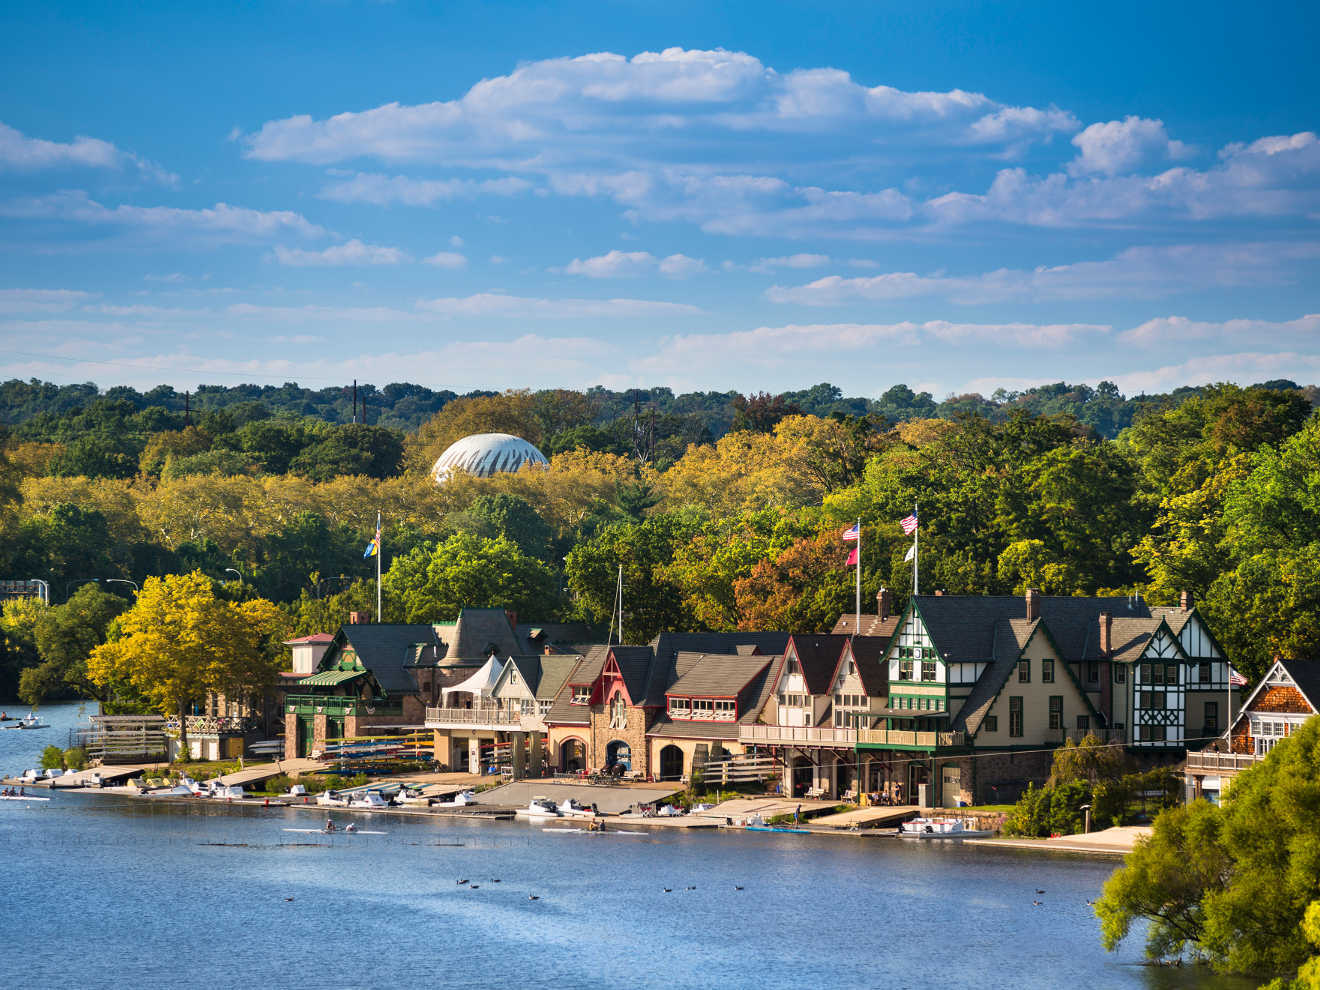 19th-century boat houses line the Schuylkill River - wealth and tax advisor